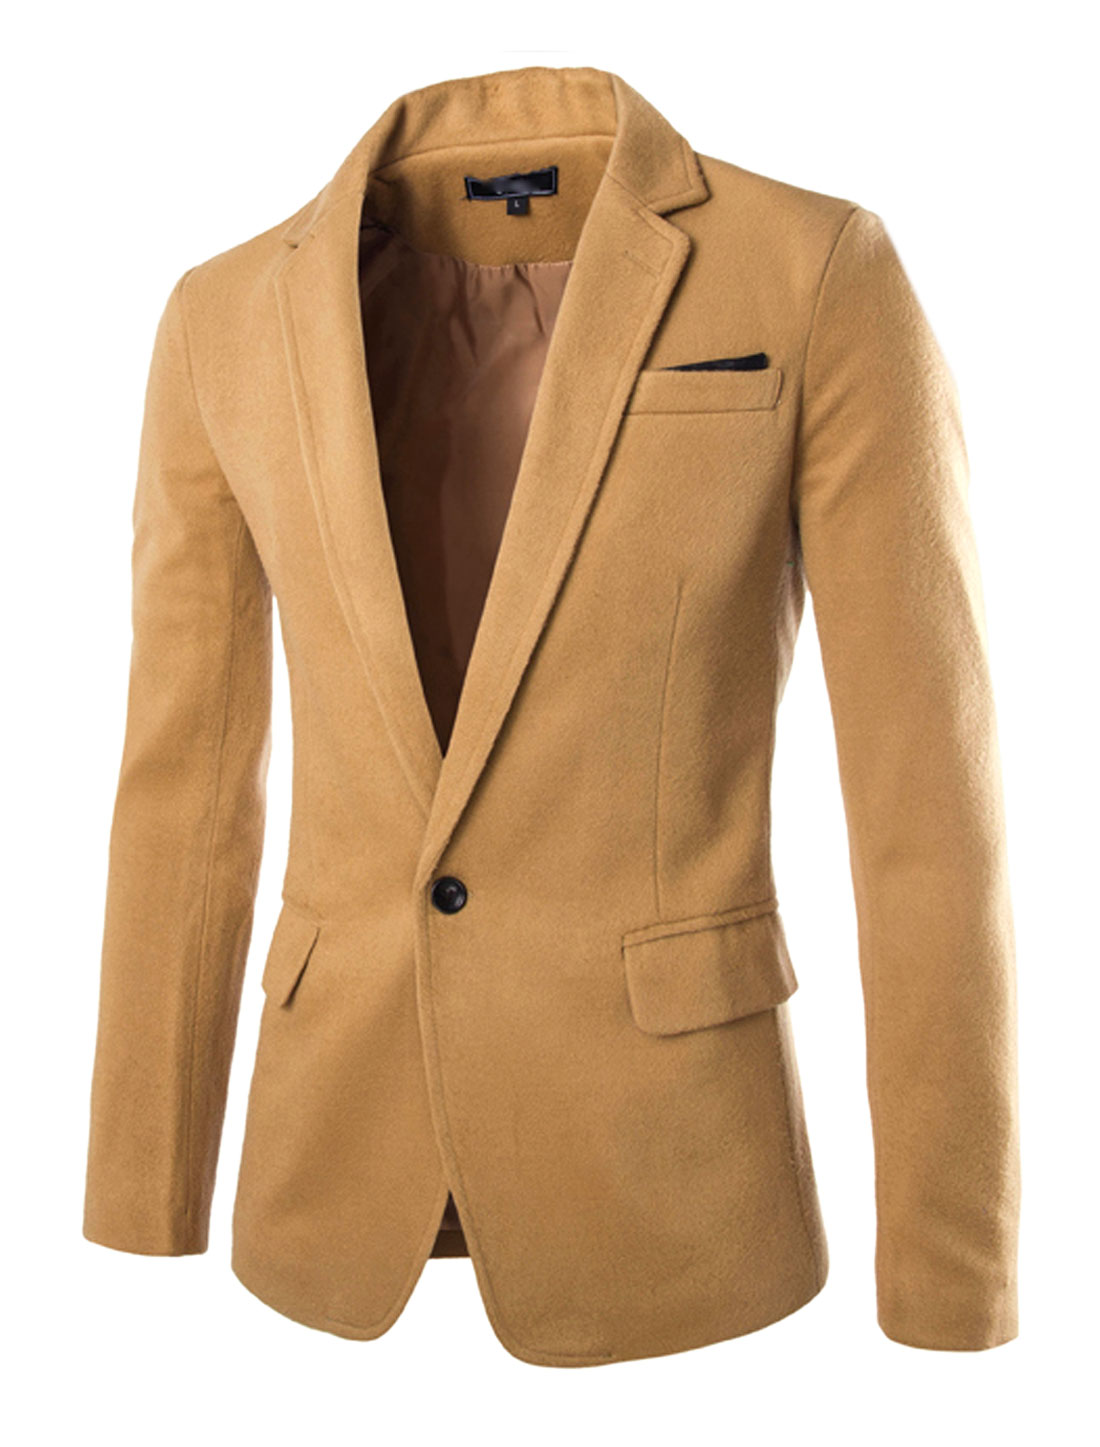 Men Notched Lapel Long Sleeve Single Breasted Slim Fit Blazers Camel M